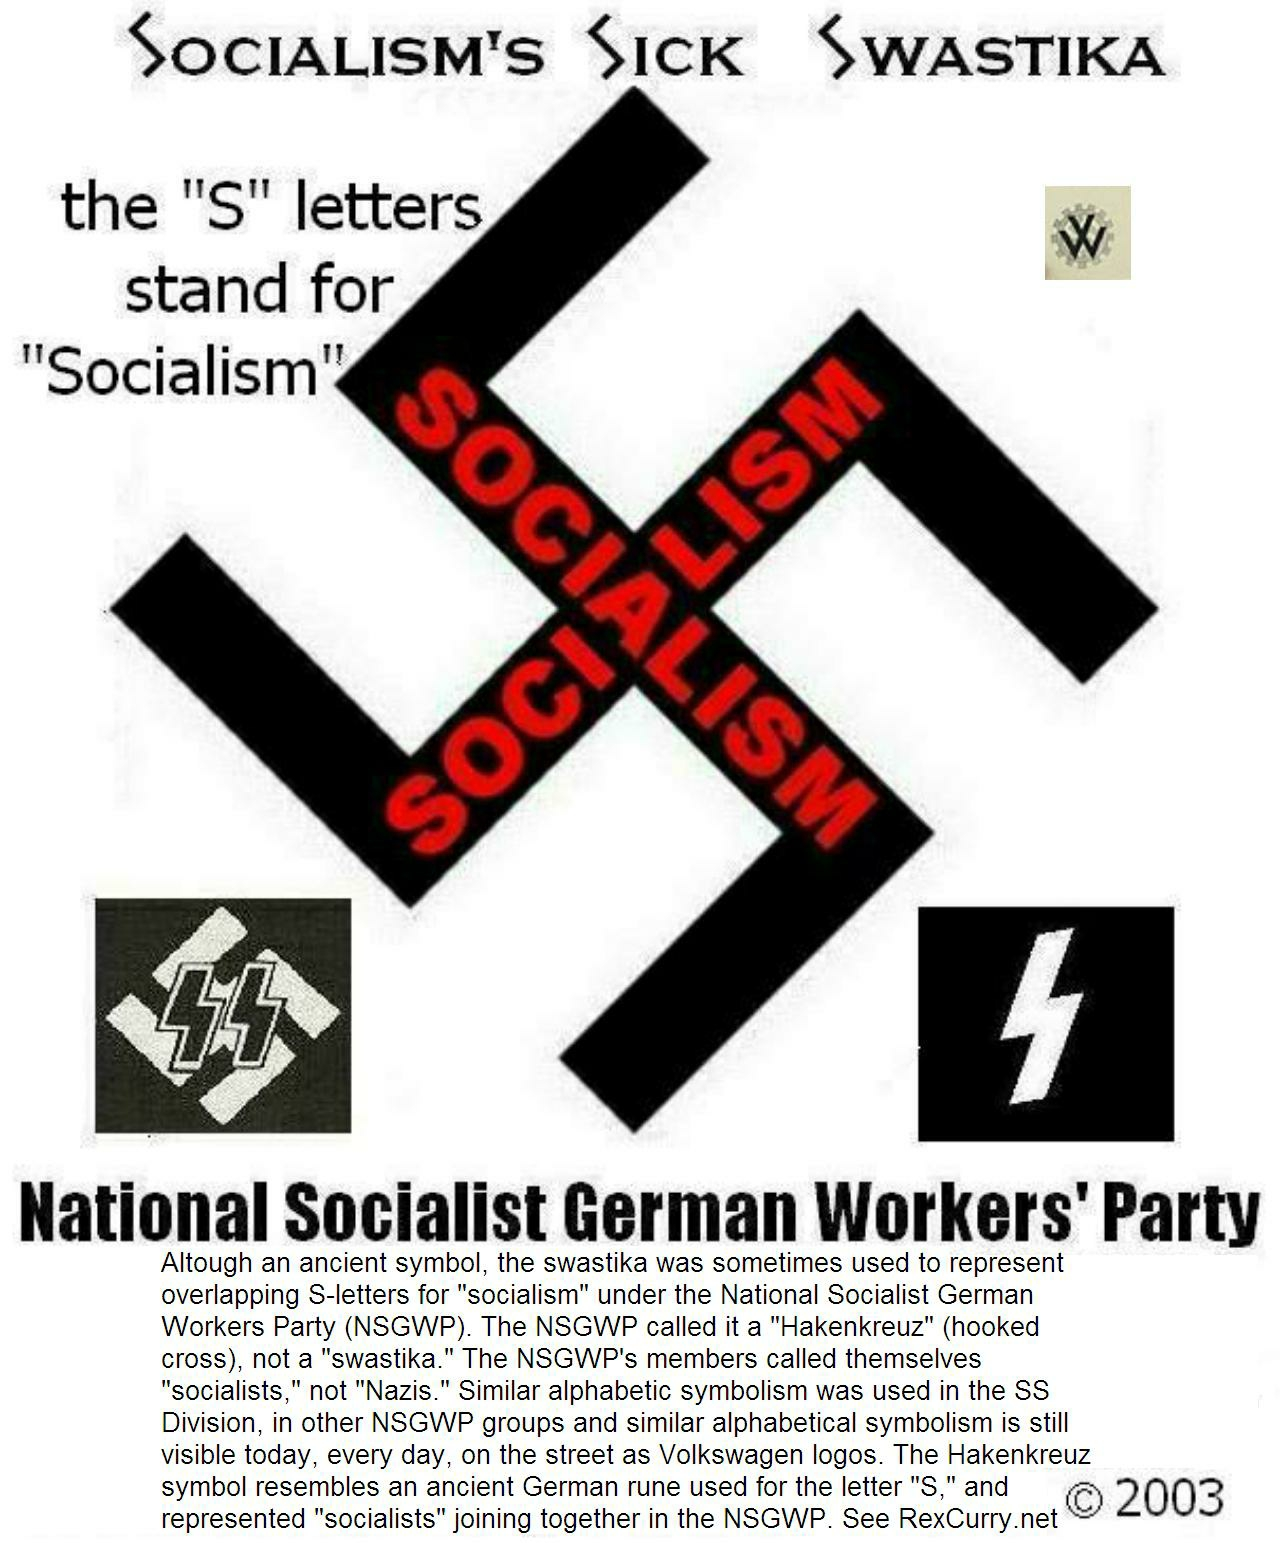 Daniel Ruth Tampa Tribune was educated by RexCurry.net